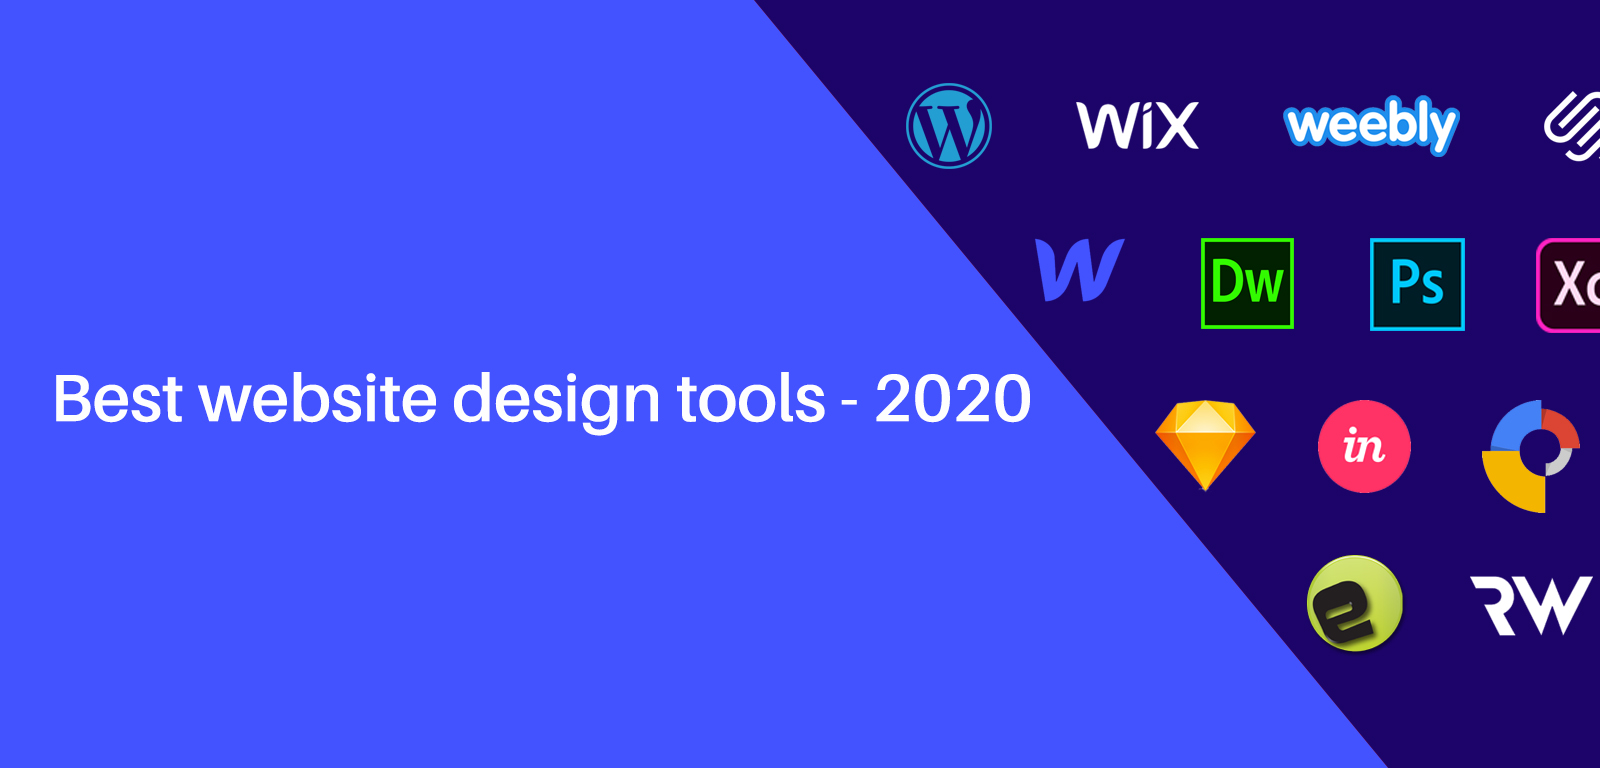 Best Website Design Tools 2020